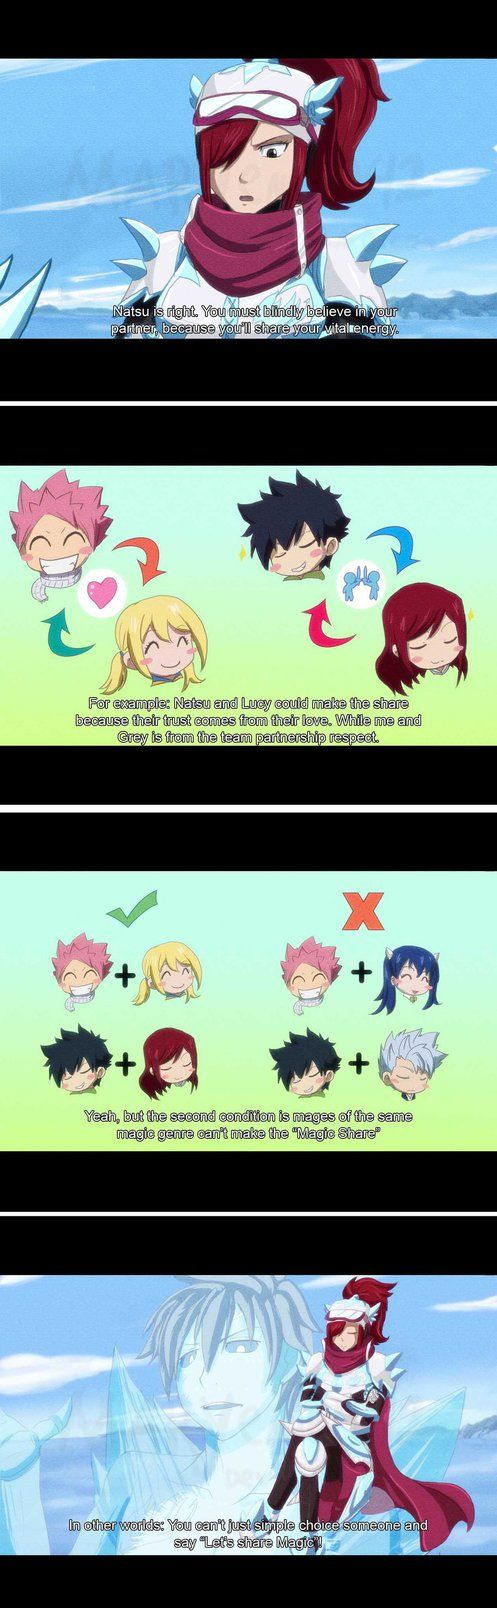 Magic Share - Part two - nalu- fairy tail